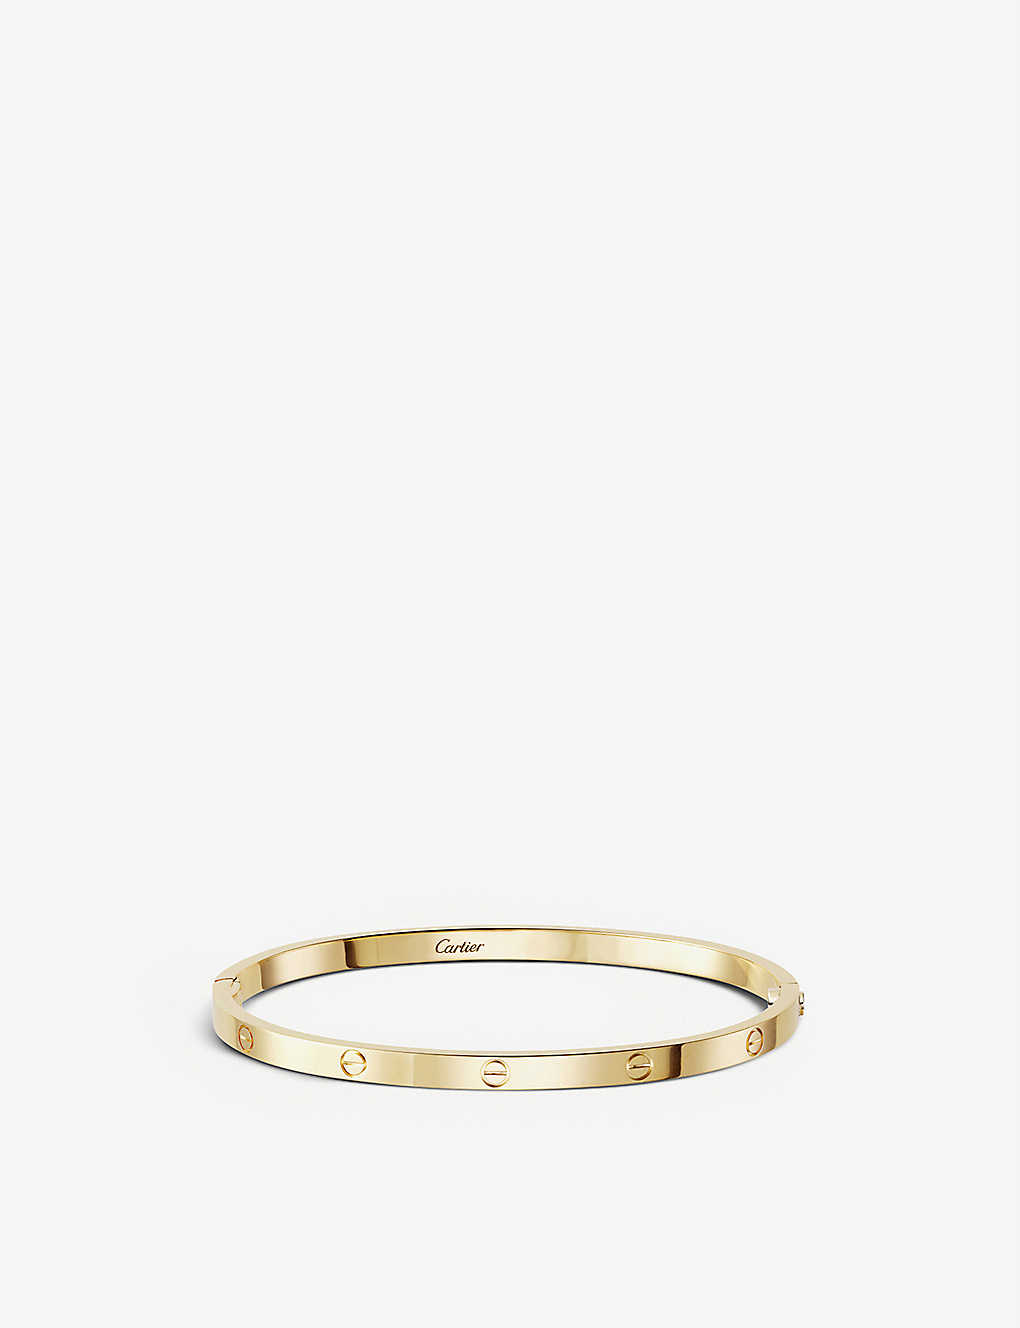 CARTIER: LOVE small 18ct yellow-gold bracelet